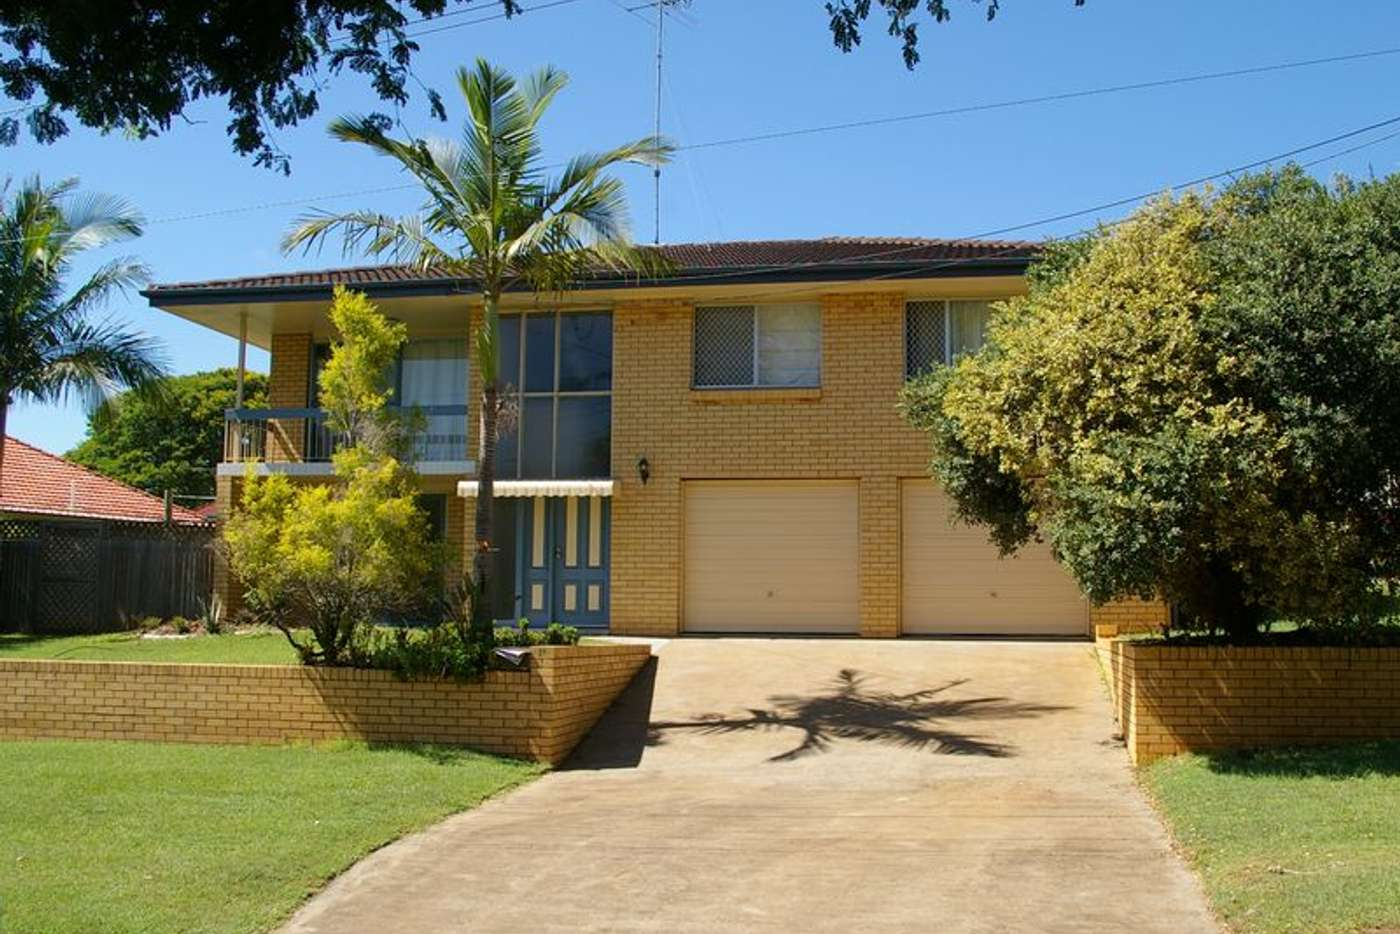 Main view of Homely house listing, 34 Granby Street, Upper Mount Gravatt QLD 4122